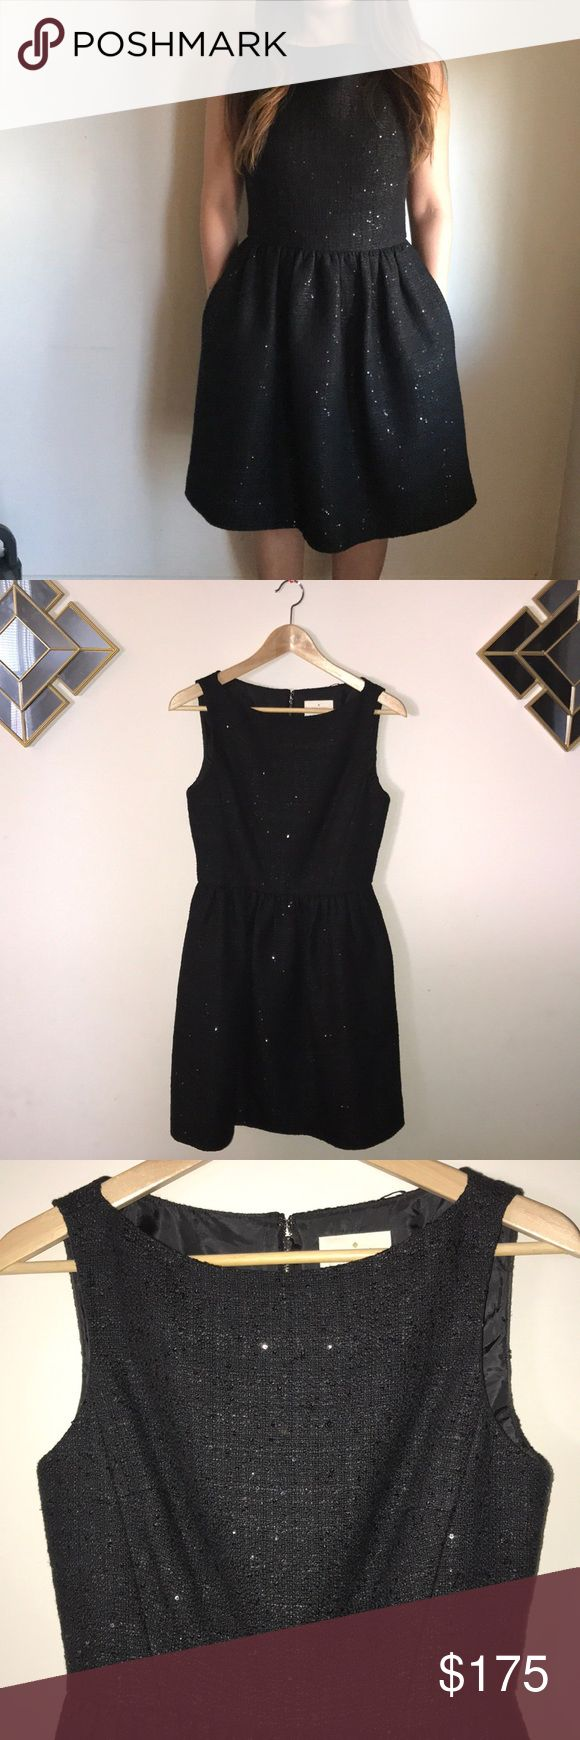 Kate Spade evening/cocktail dress New Kate Spade Dress • Black Sequin • Tweed Fit and Flare • Perfect for evening event • 70% cotton • 30% Polyester • Dry Clean Only kate spade Dresses